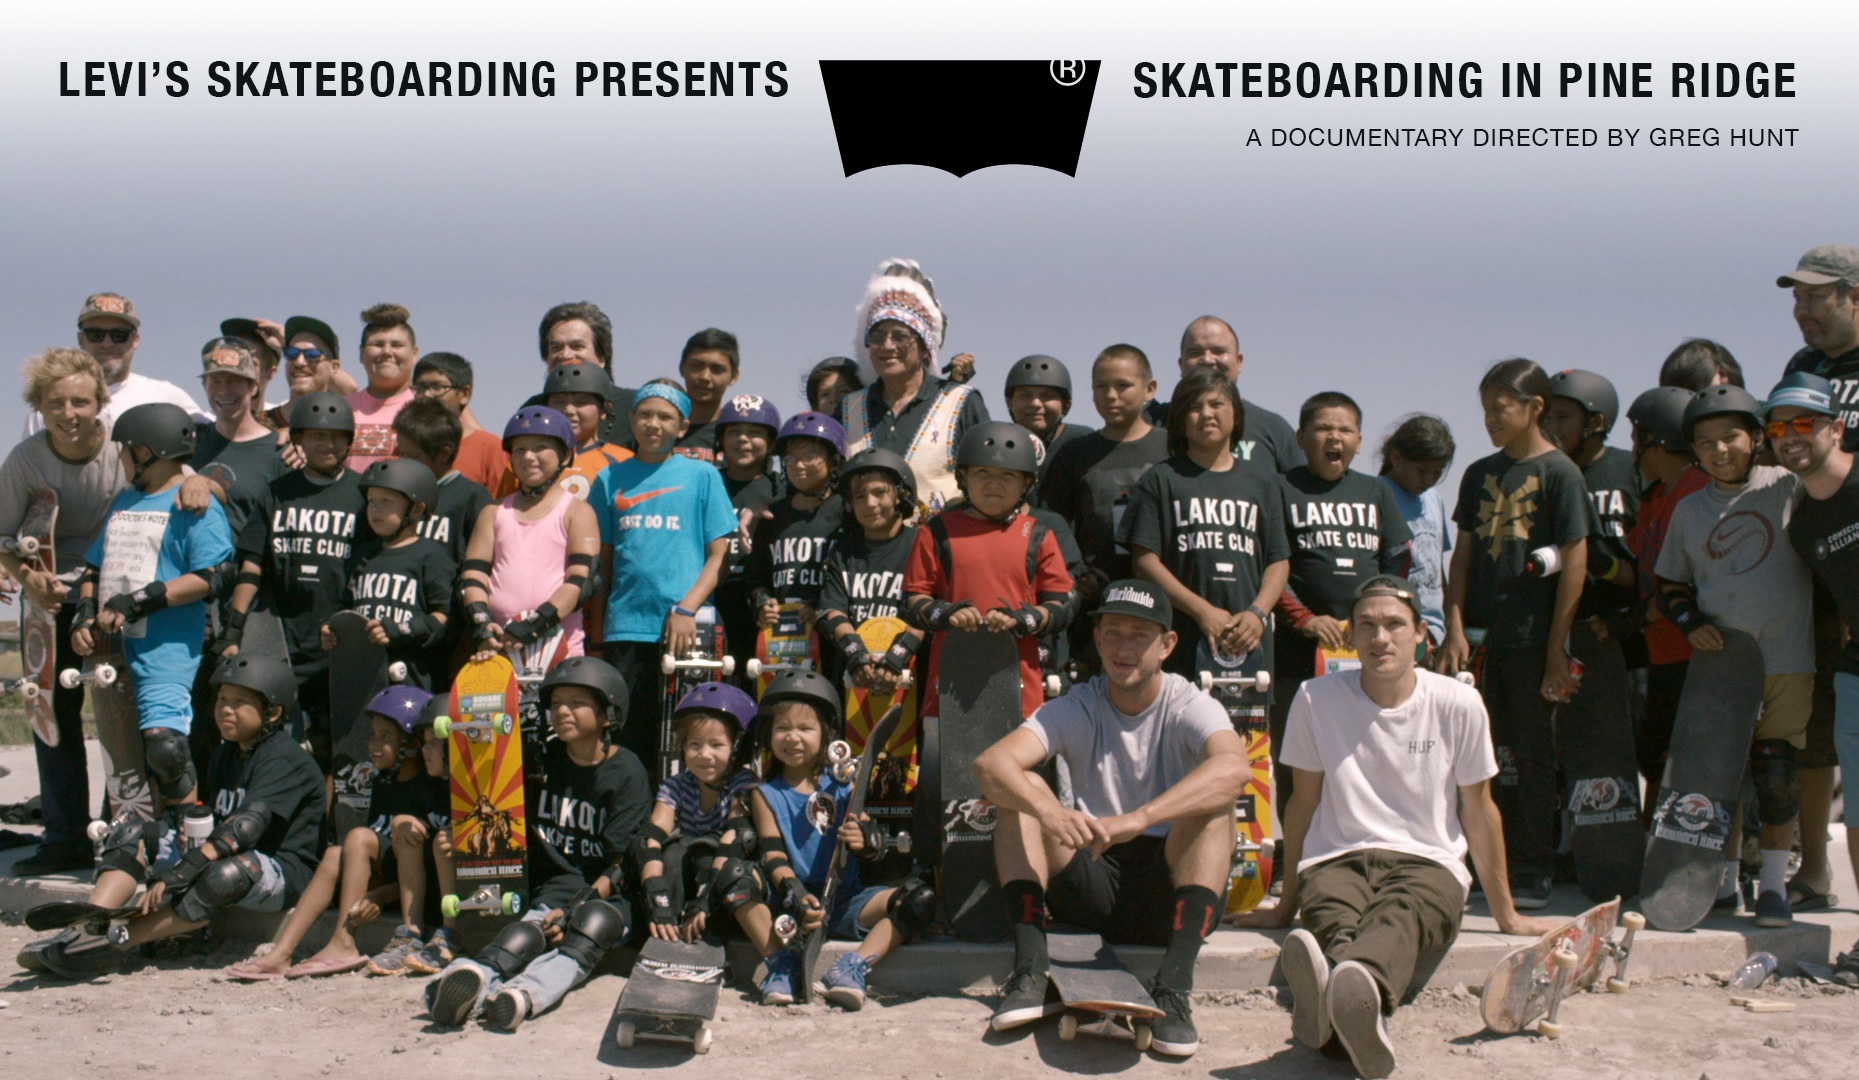 Lakota Skate Crew in full effect